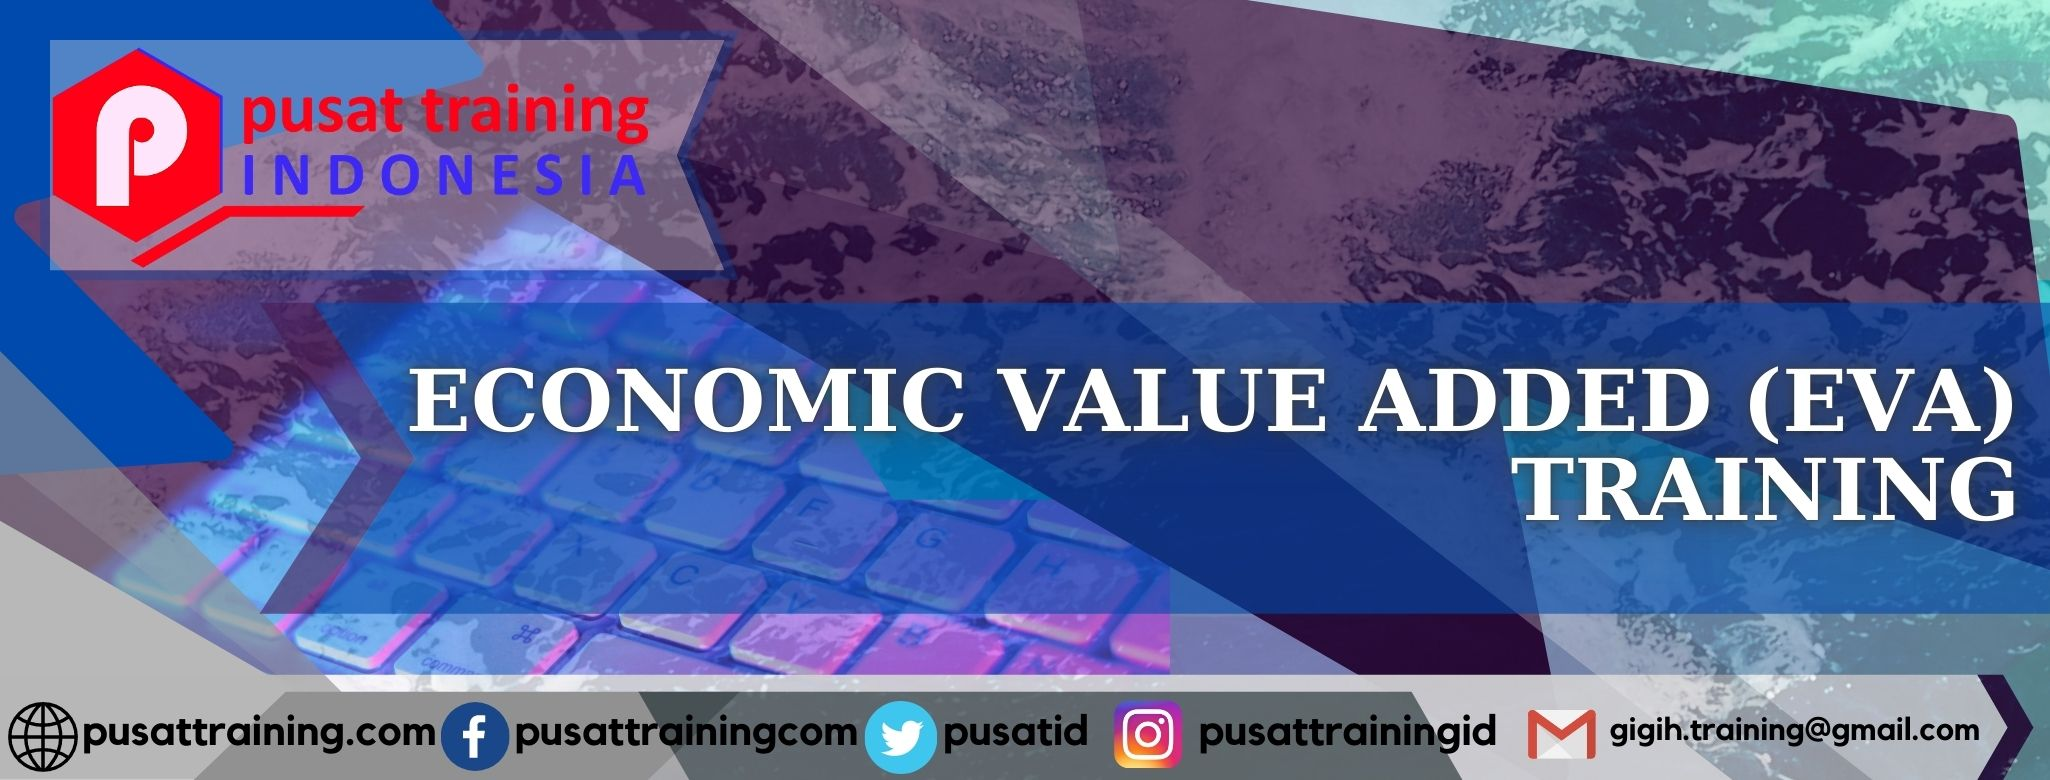 economic-value-added-eva-training